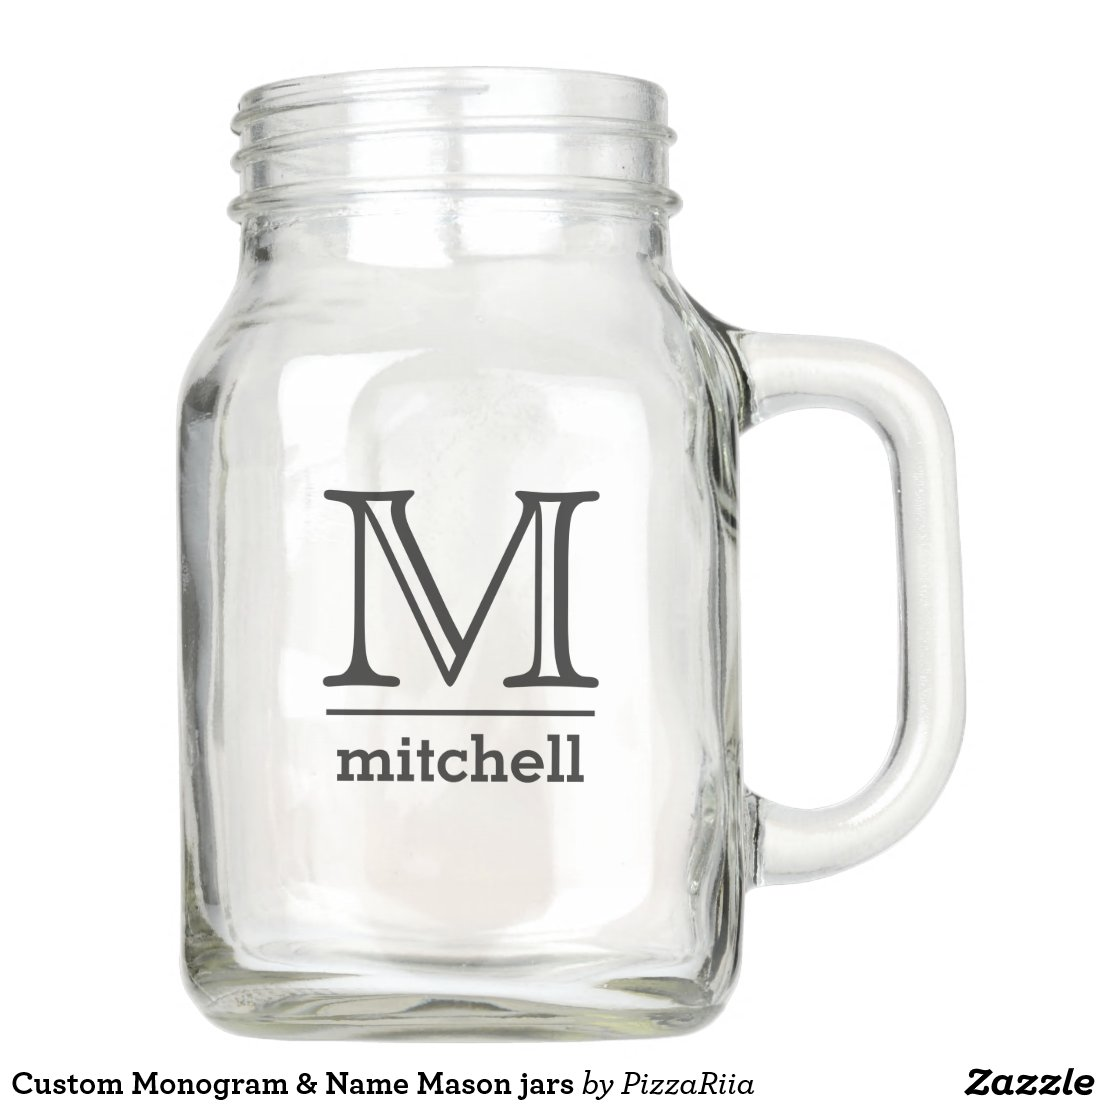 Custom Monogram & Name Mason jars